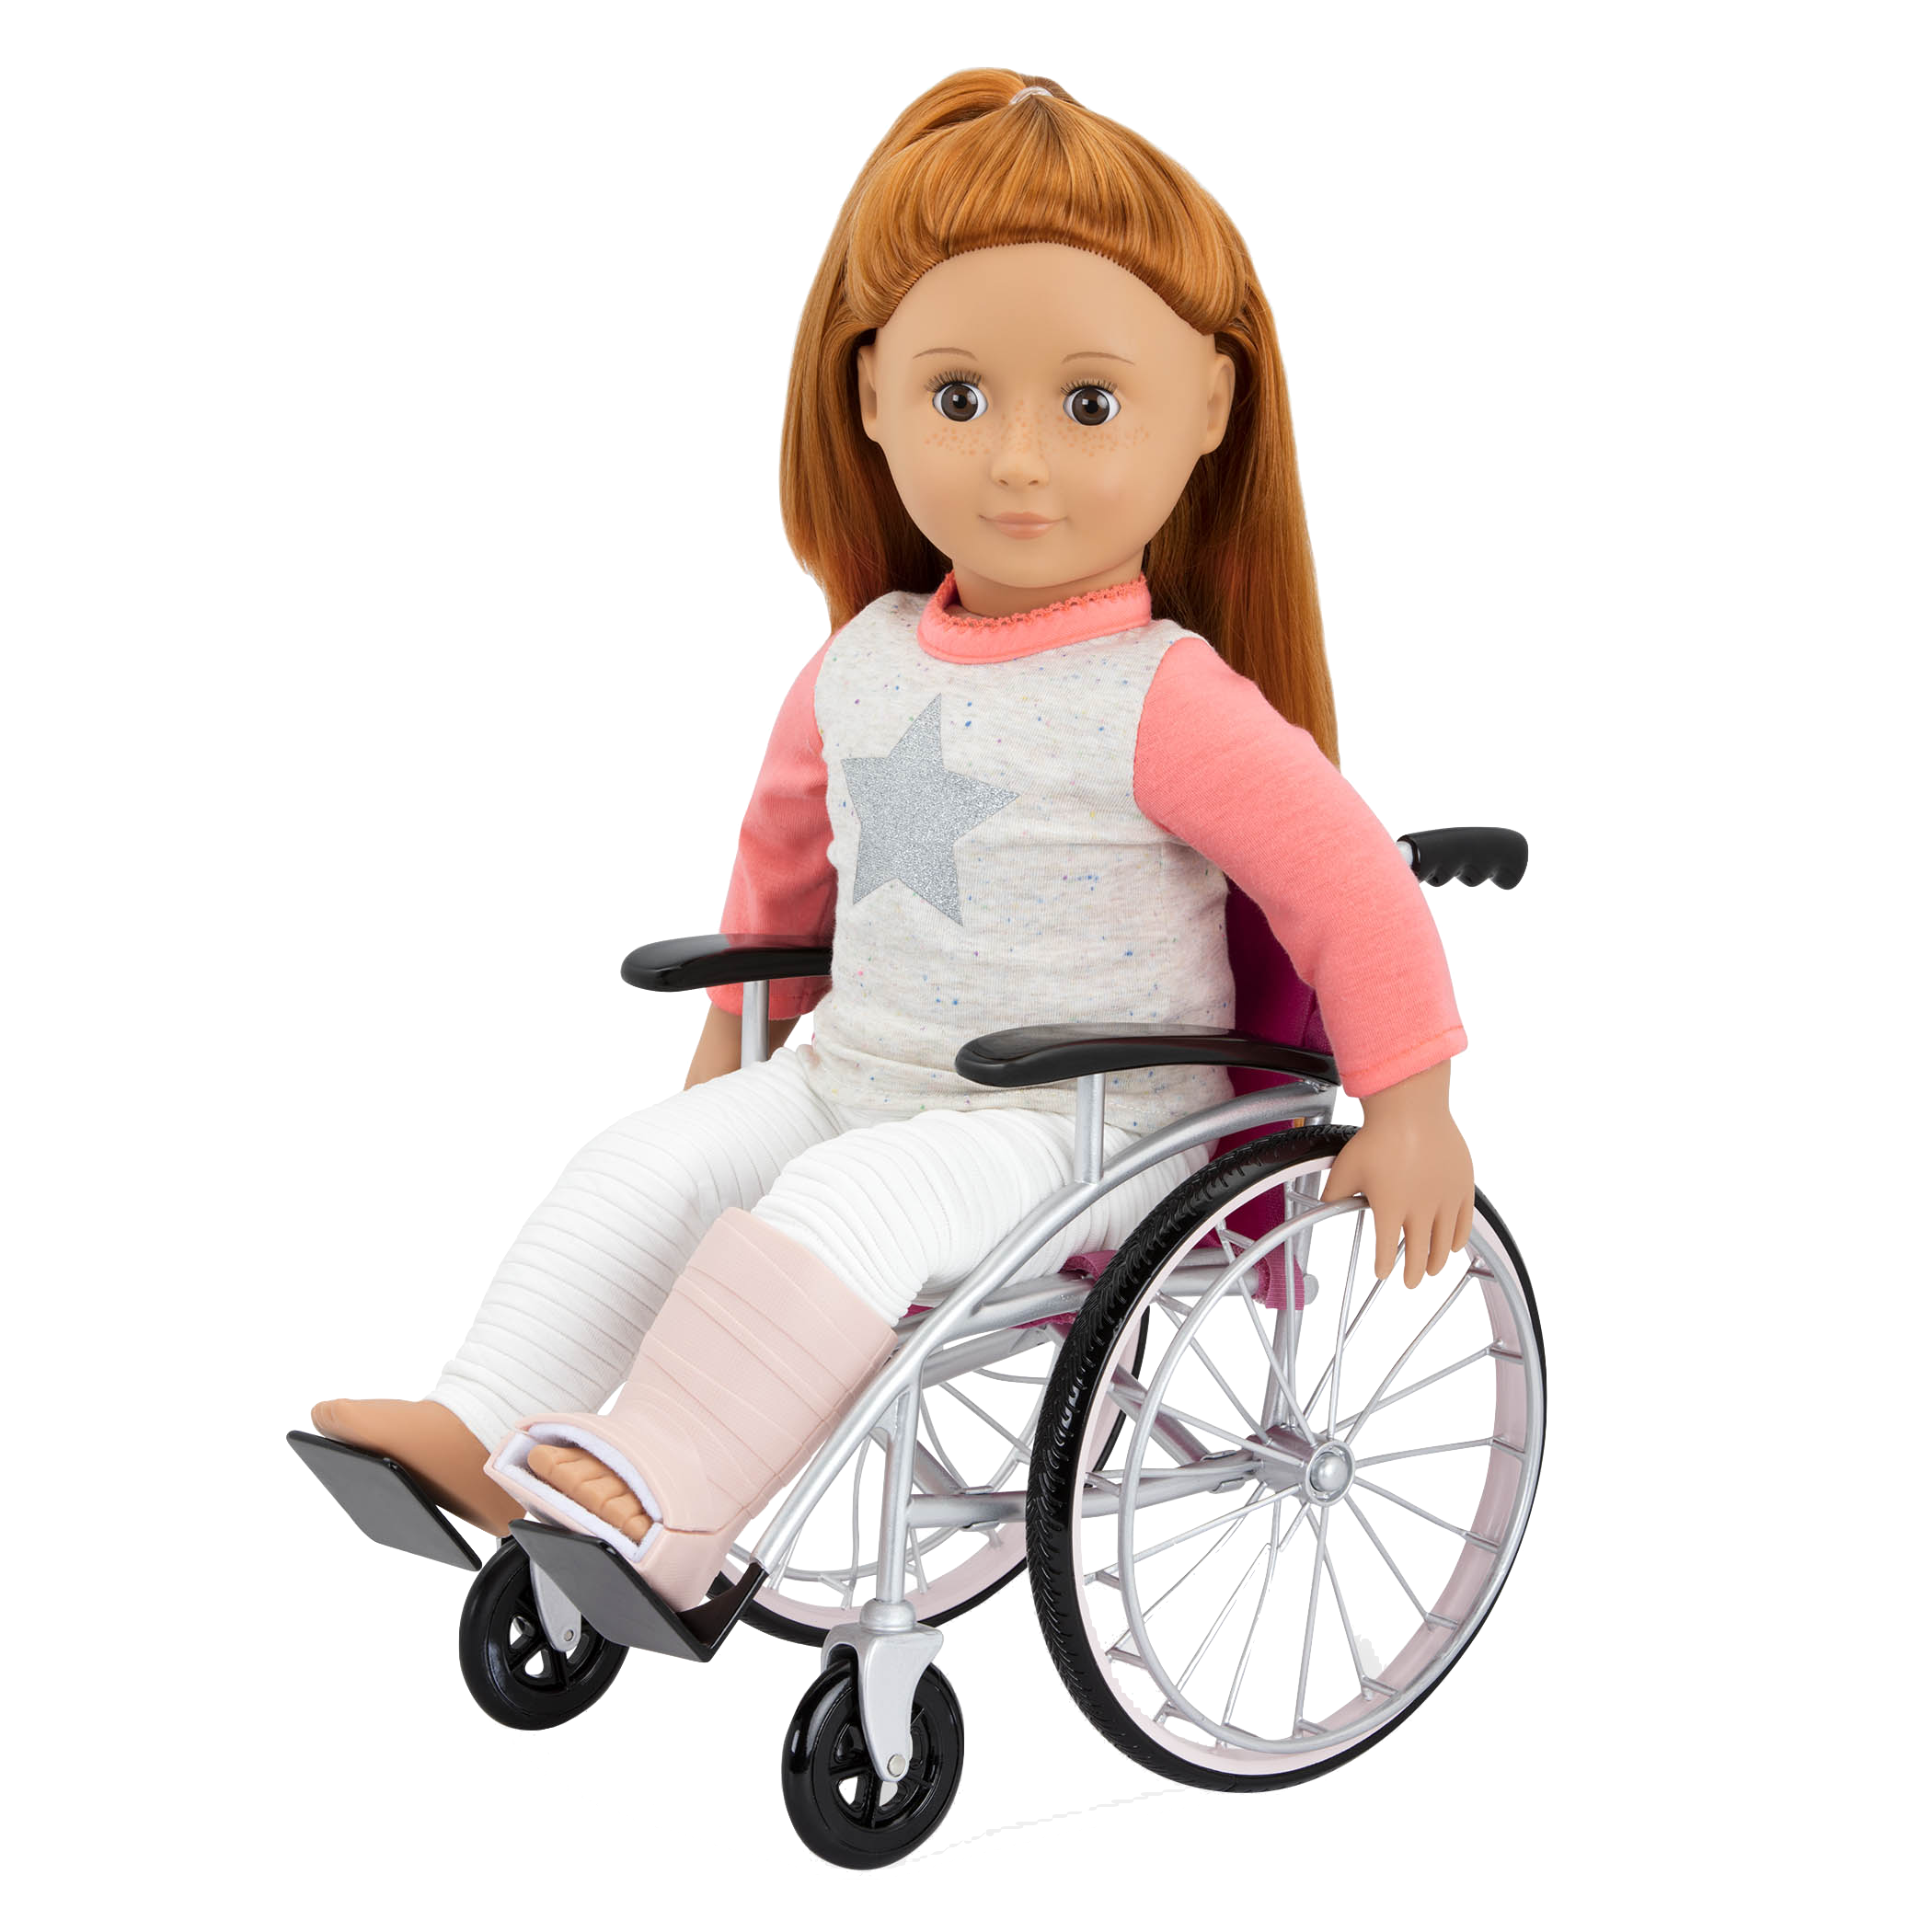 Heals on Wheels medical Accessories Noa in wheelchair